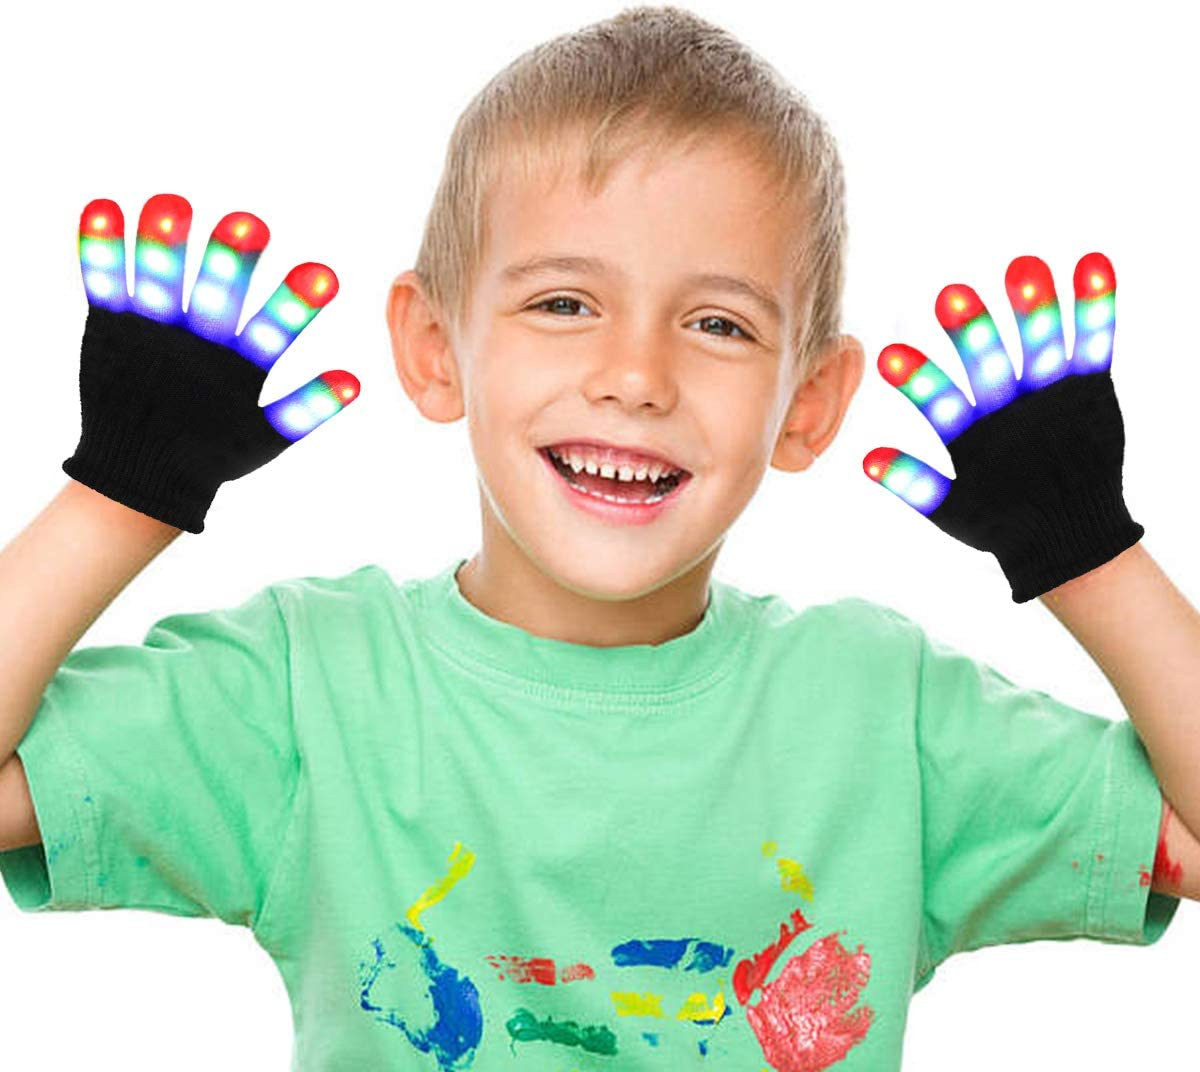 Ages 4-9, Pink Jofan Light Up Gloves LED Gloves Rave Cool Toys Gifts for Kids Teens Boys Girls Christmas Stocking Stuffers Party Favors